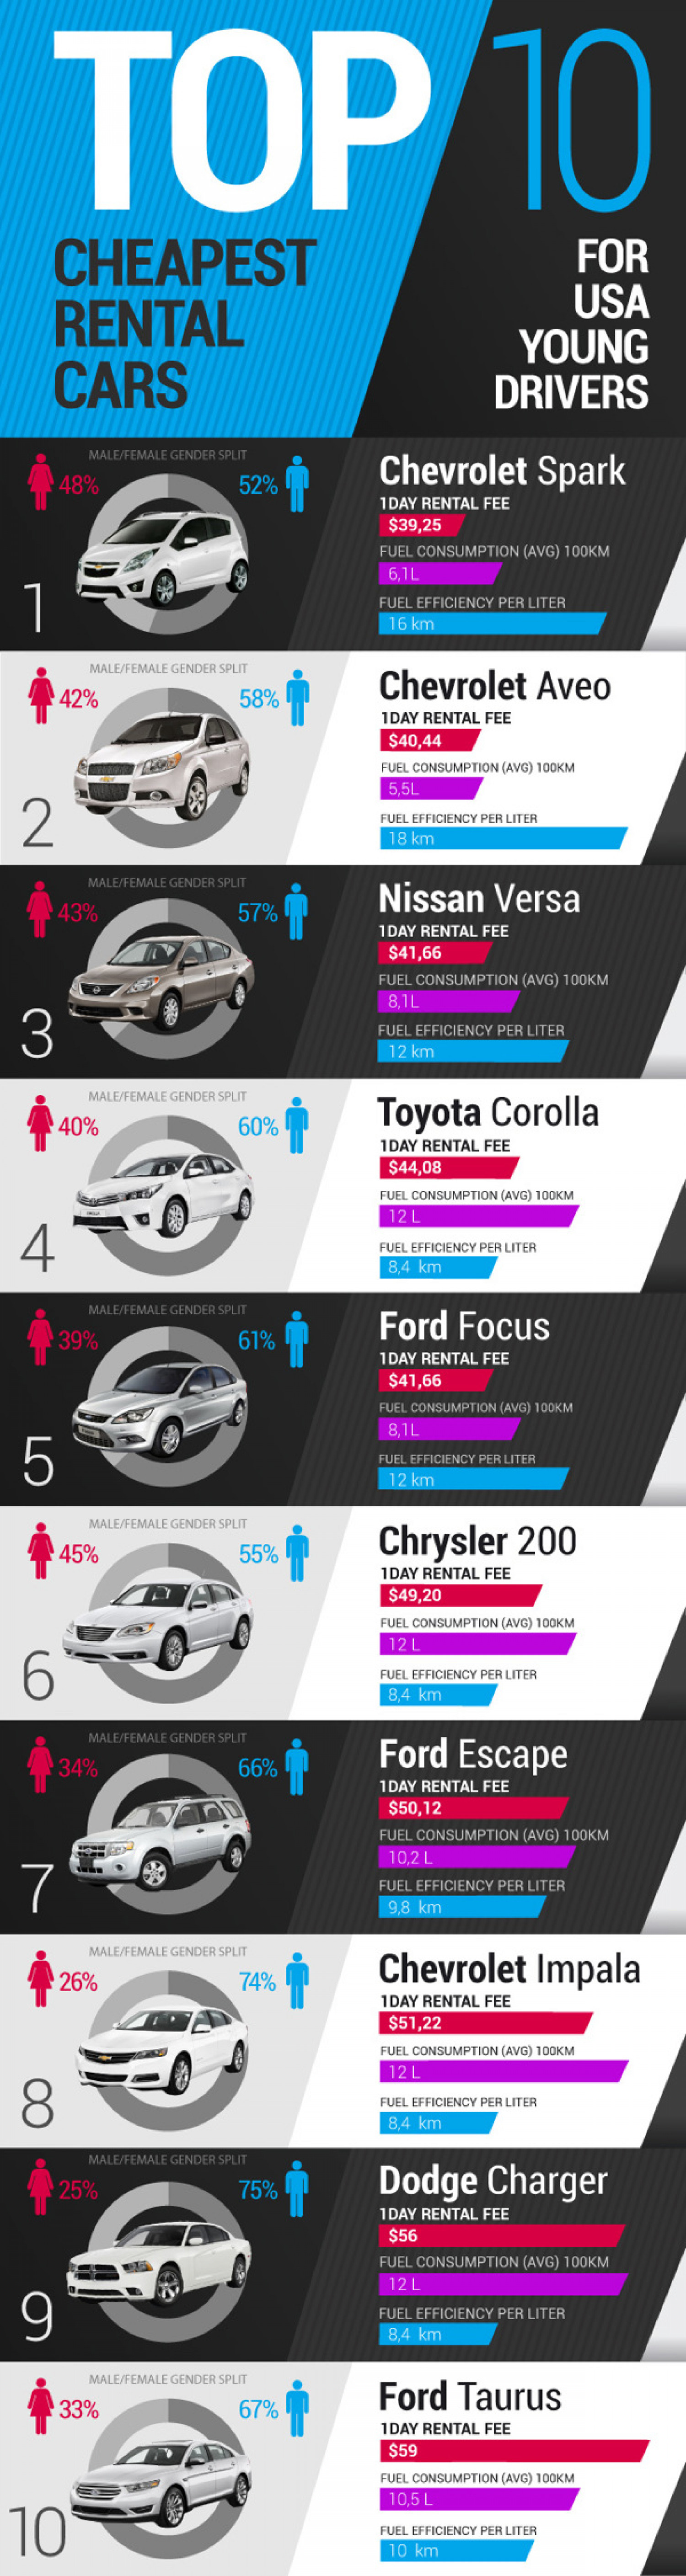 Top 10 Cheapest Rental Cars Infographic